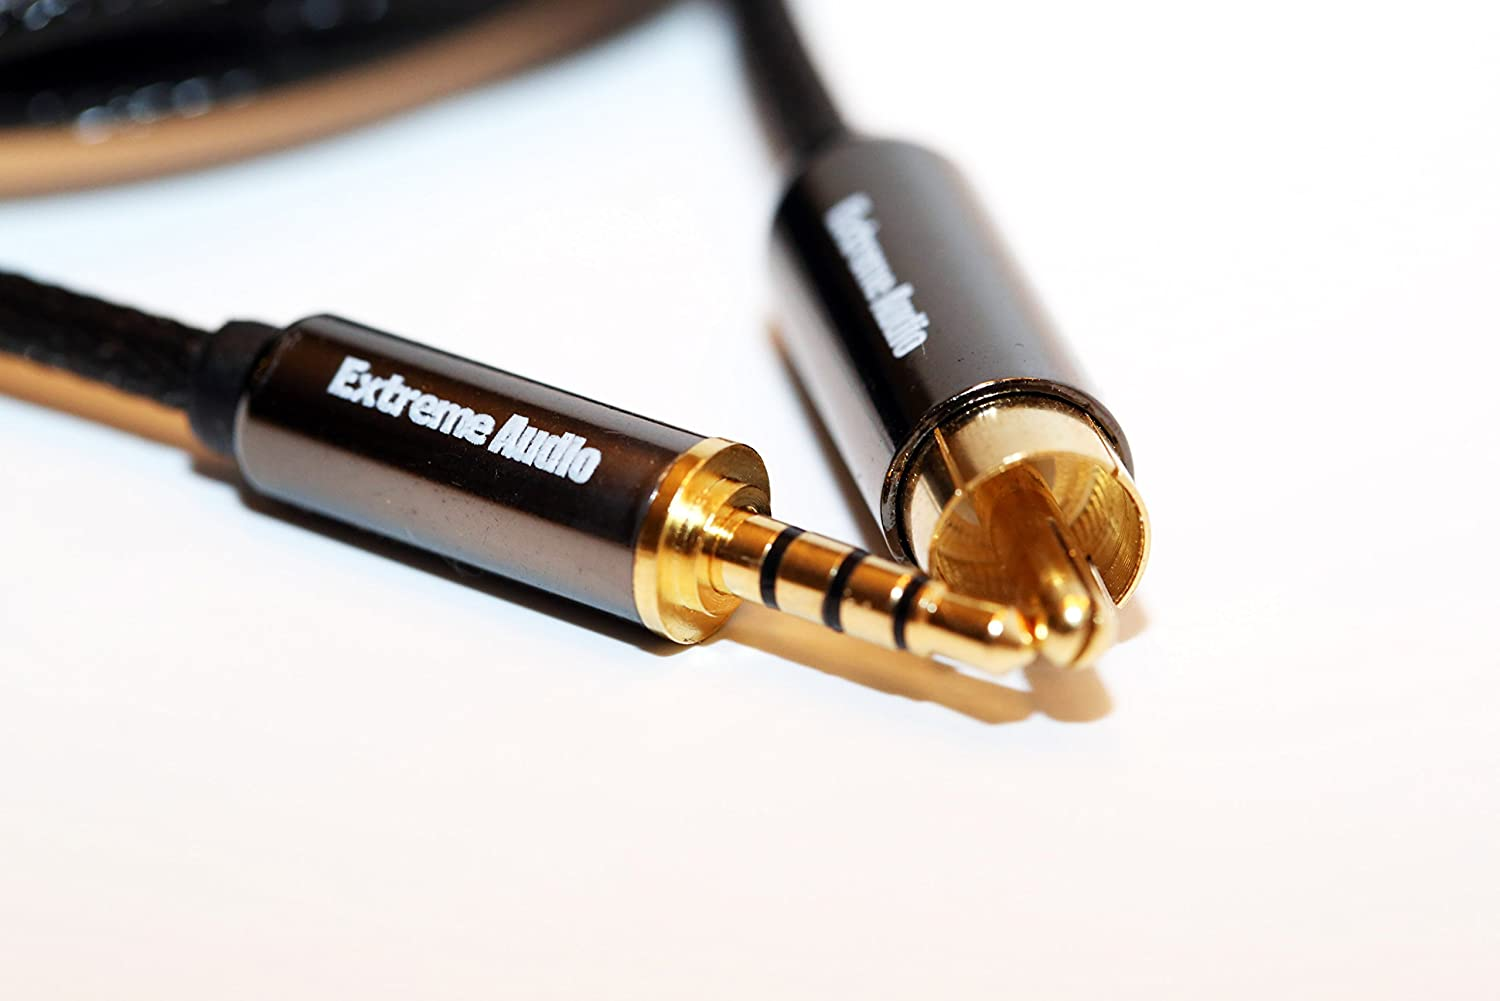 Extreme Audio 3.5mm Stereo (4 Pole) to RCA Digital Coaxial Audio Connection Cable FiiO X3 2nd Generation, FiiO X5 2nd Generation Fiio X7 (6ft) XAUD-35STEREO-RCA-COAX